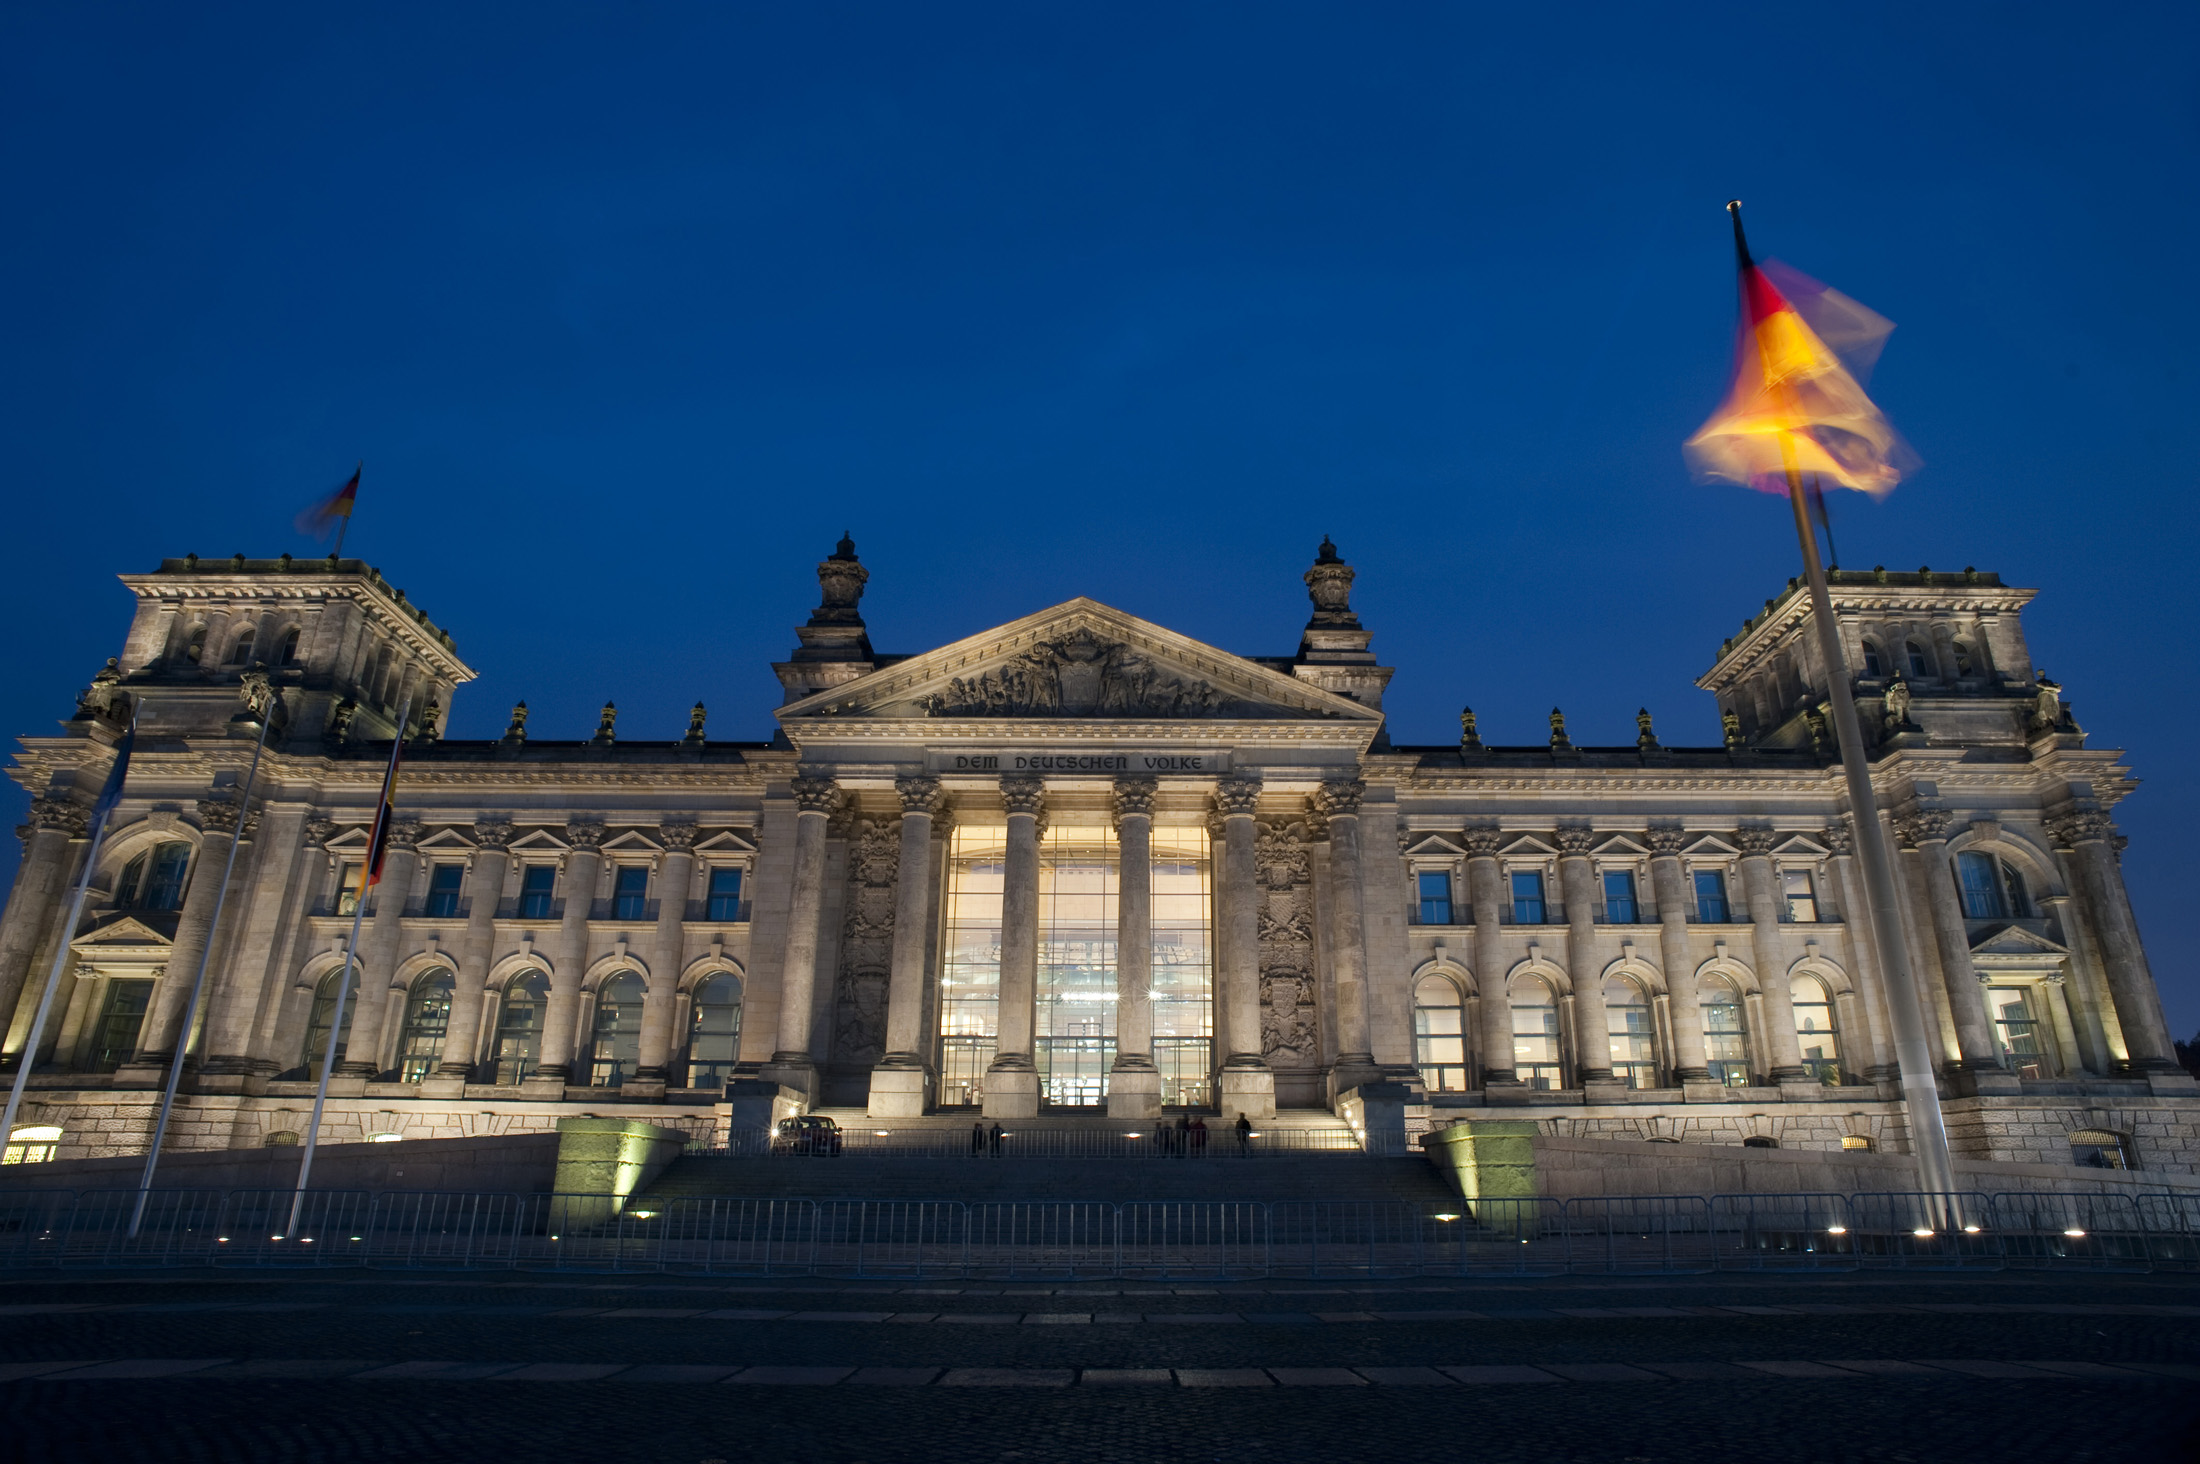 night time view of the berlin reichstag parliament building